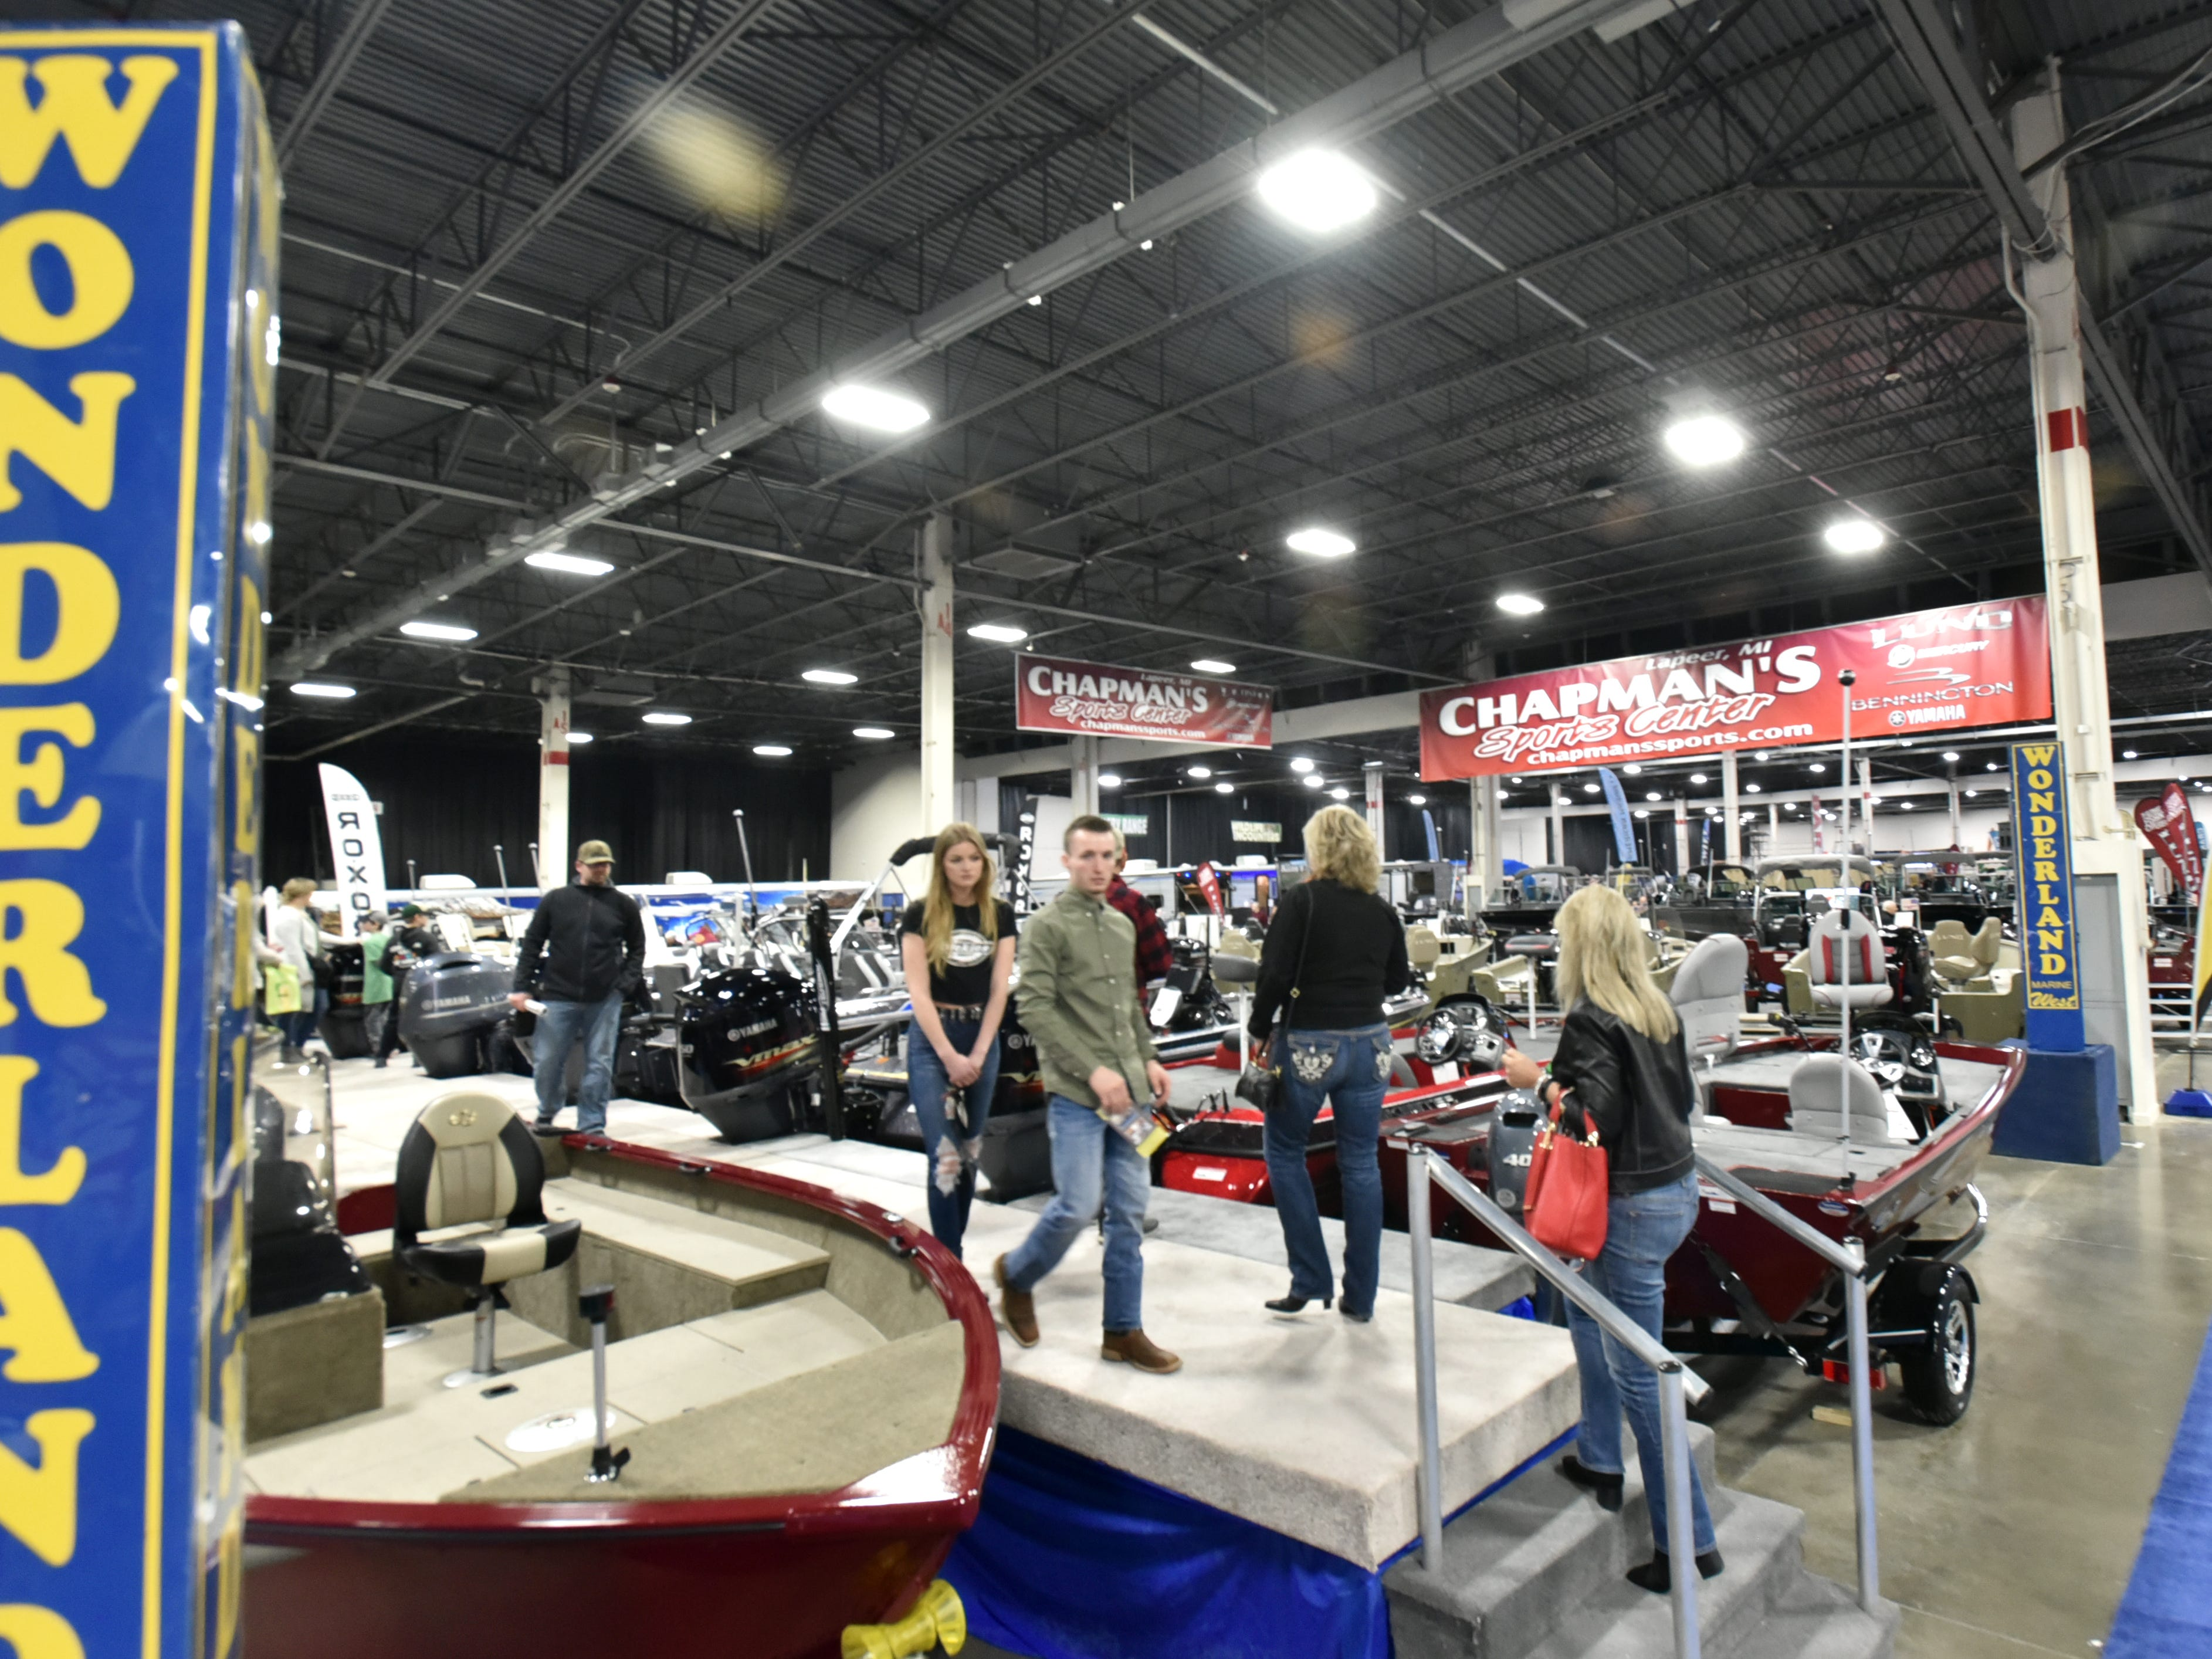 Marine retailers had acres of boats and docks for attendees of the Outdoorama to check out.